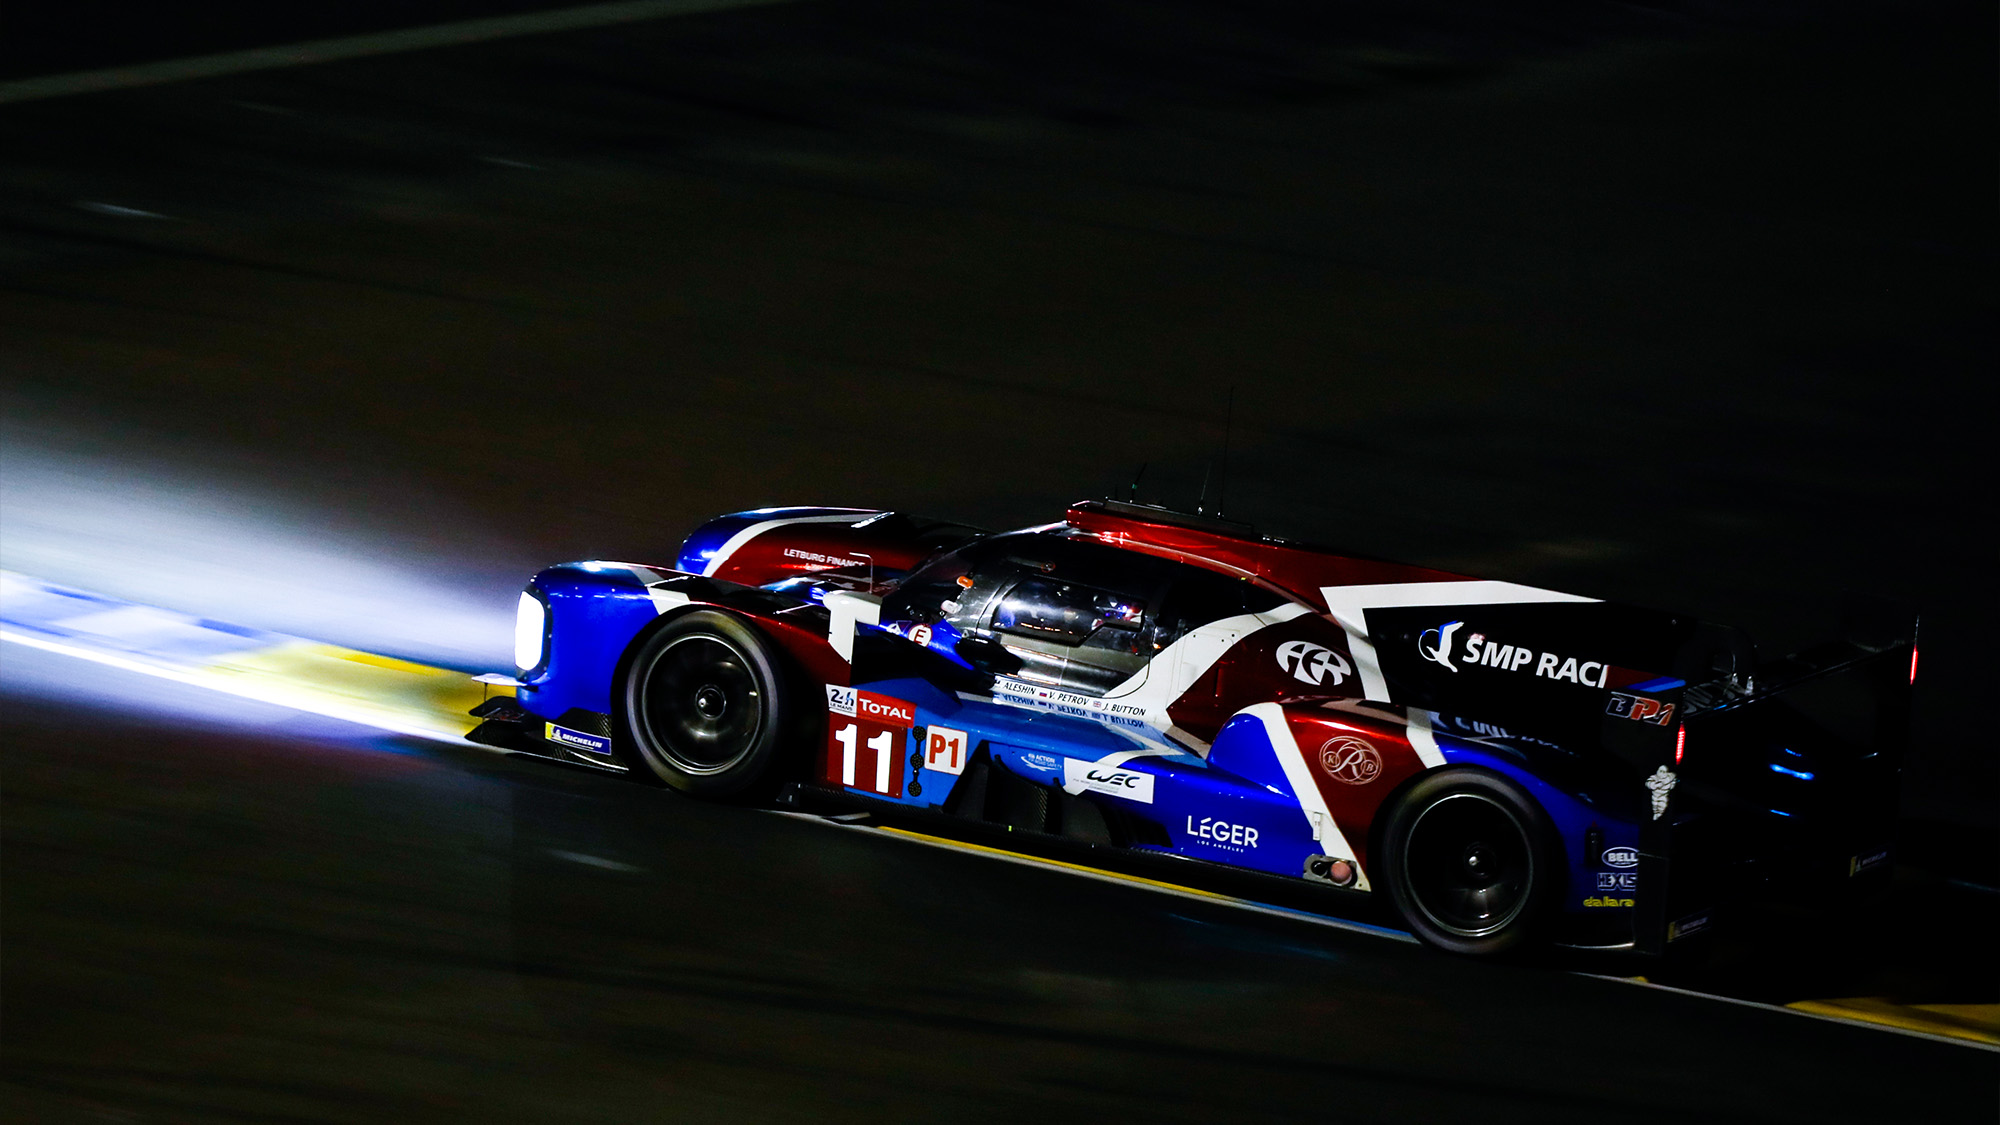 SMP Racing car at night in the 2018 Le Mans 24 Hours